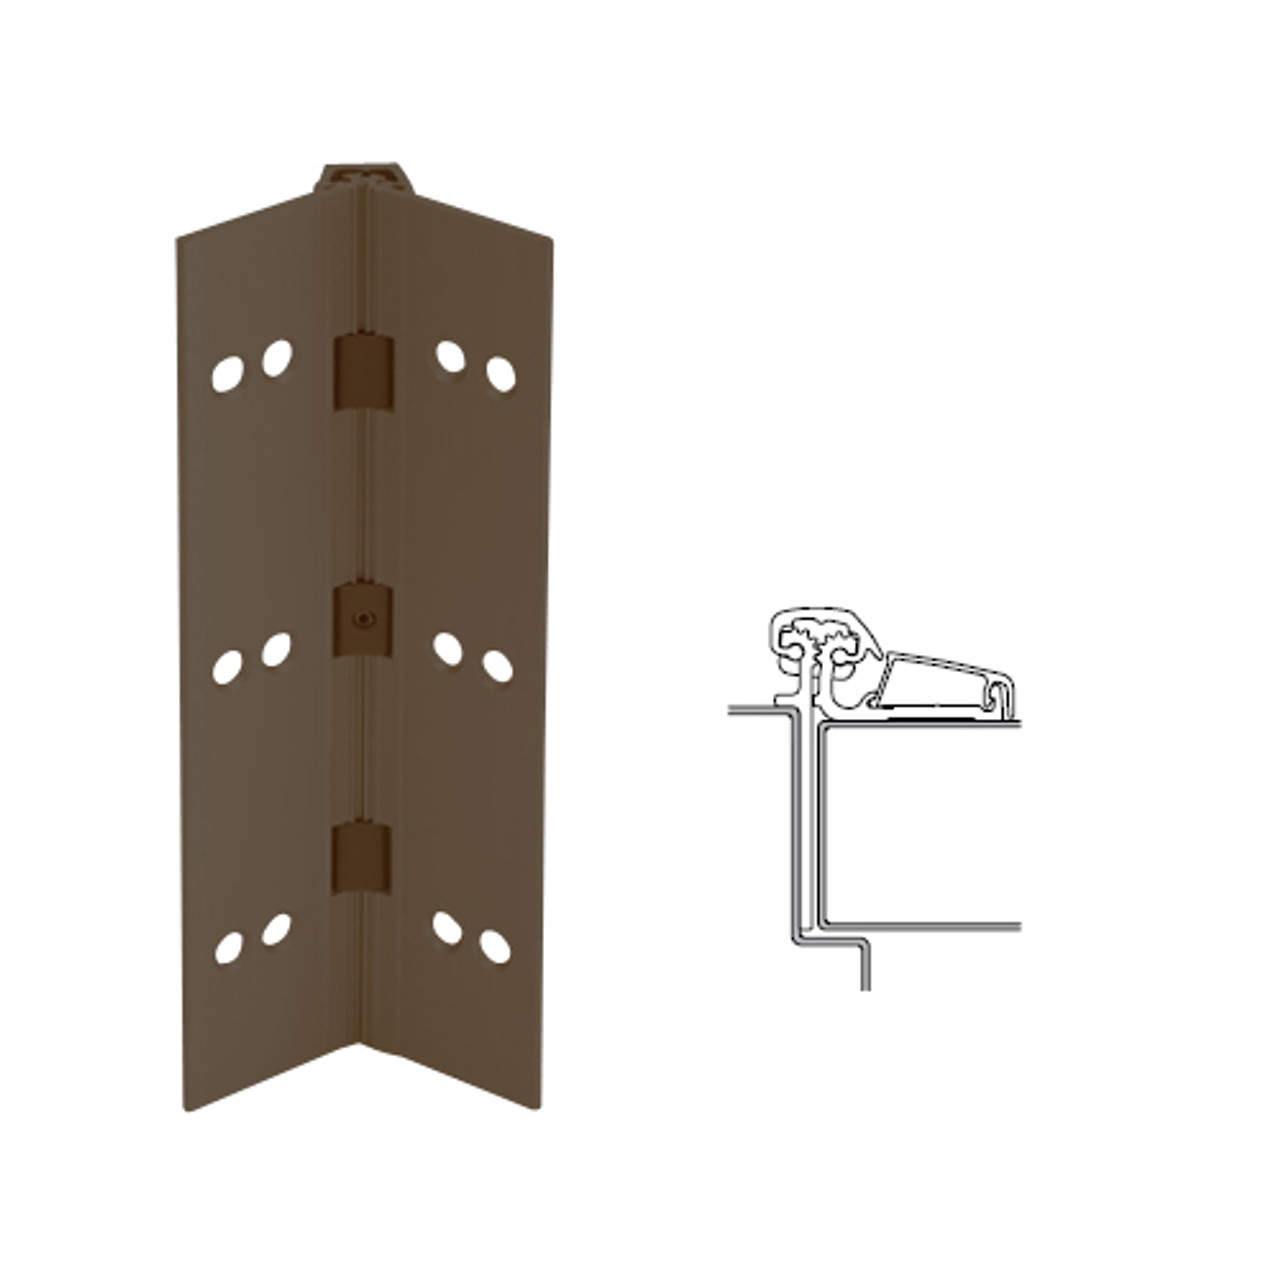 054XY-313AN-85-TFWD IVES Adjustable Half Surface Continuous Geared Hinges with Thread Forming Screws in Dark Bronze Anodized